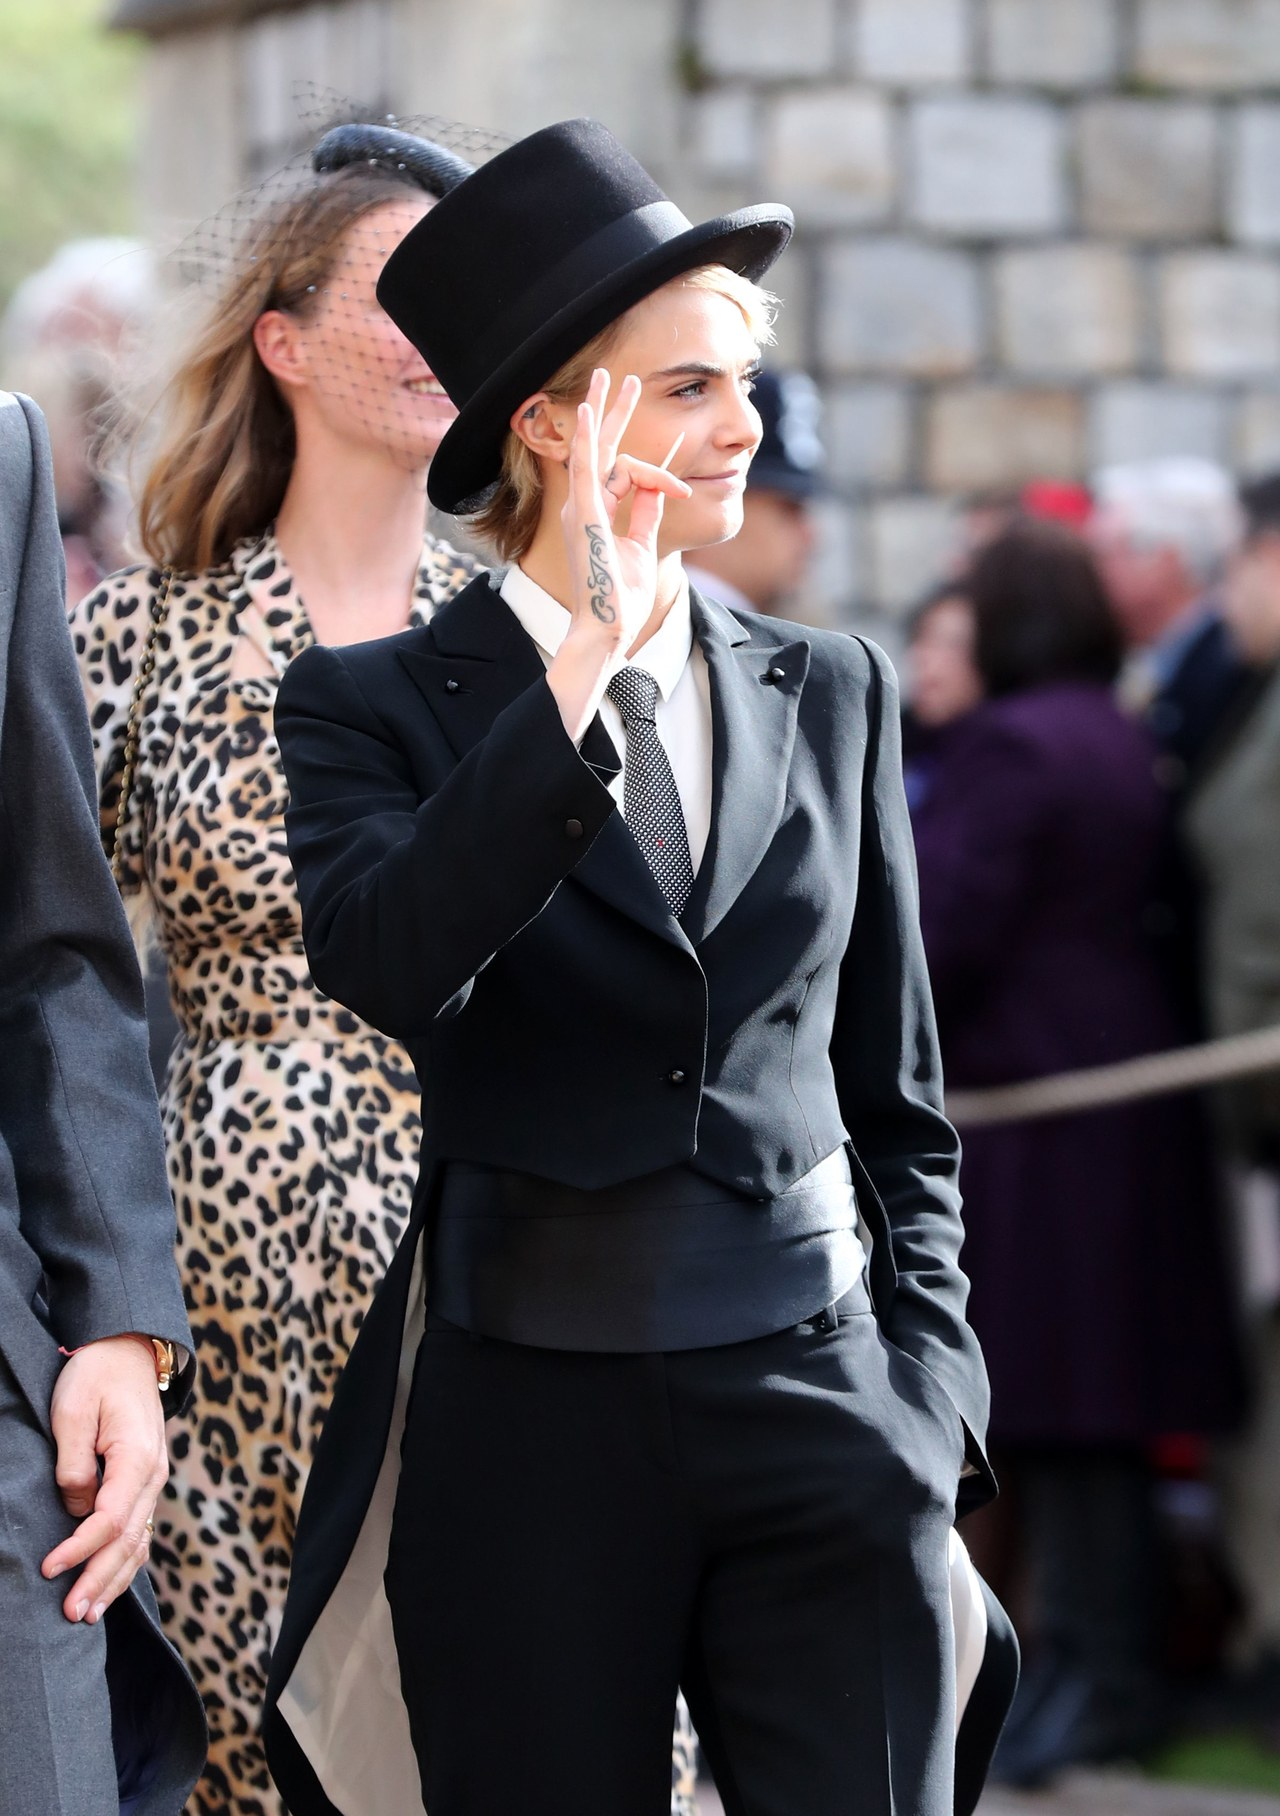 Cara Delevingne Bold Royal Wedding Look 3